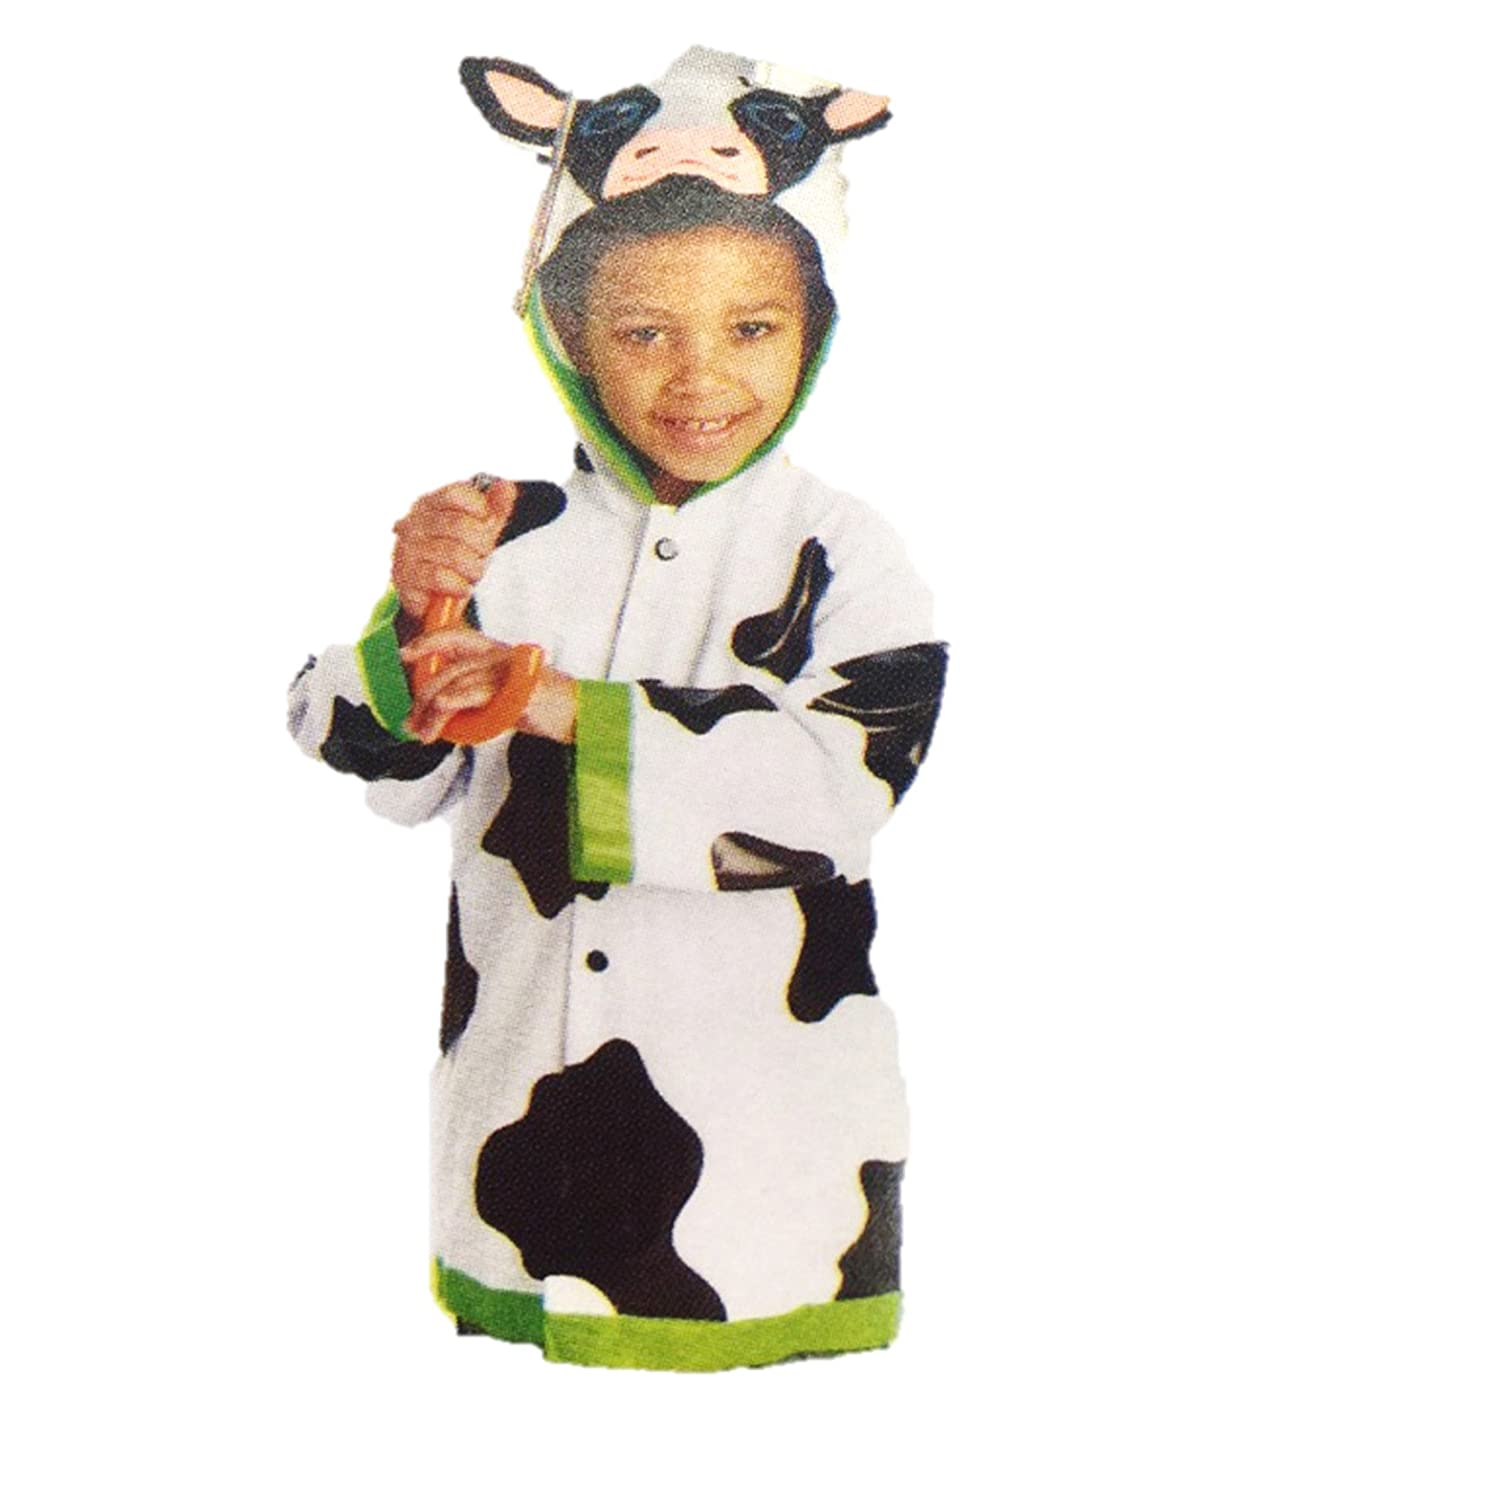 Childrens Barley the Cow Raincoat Toddler One Size